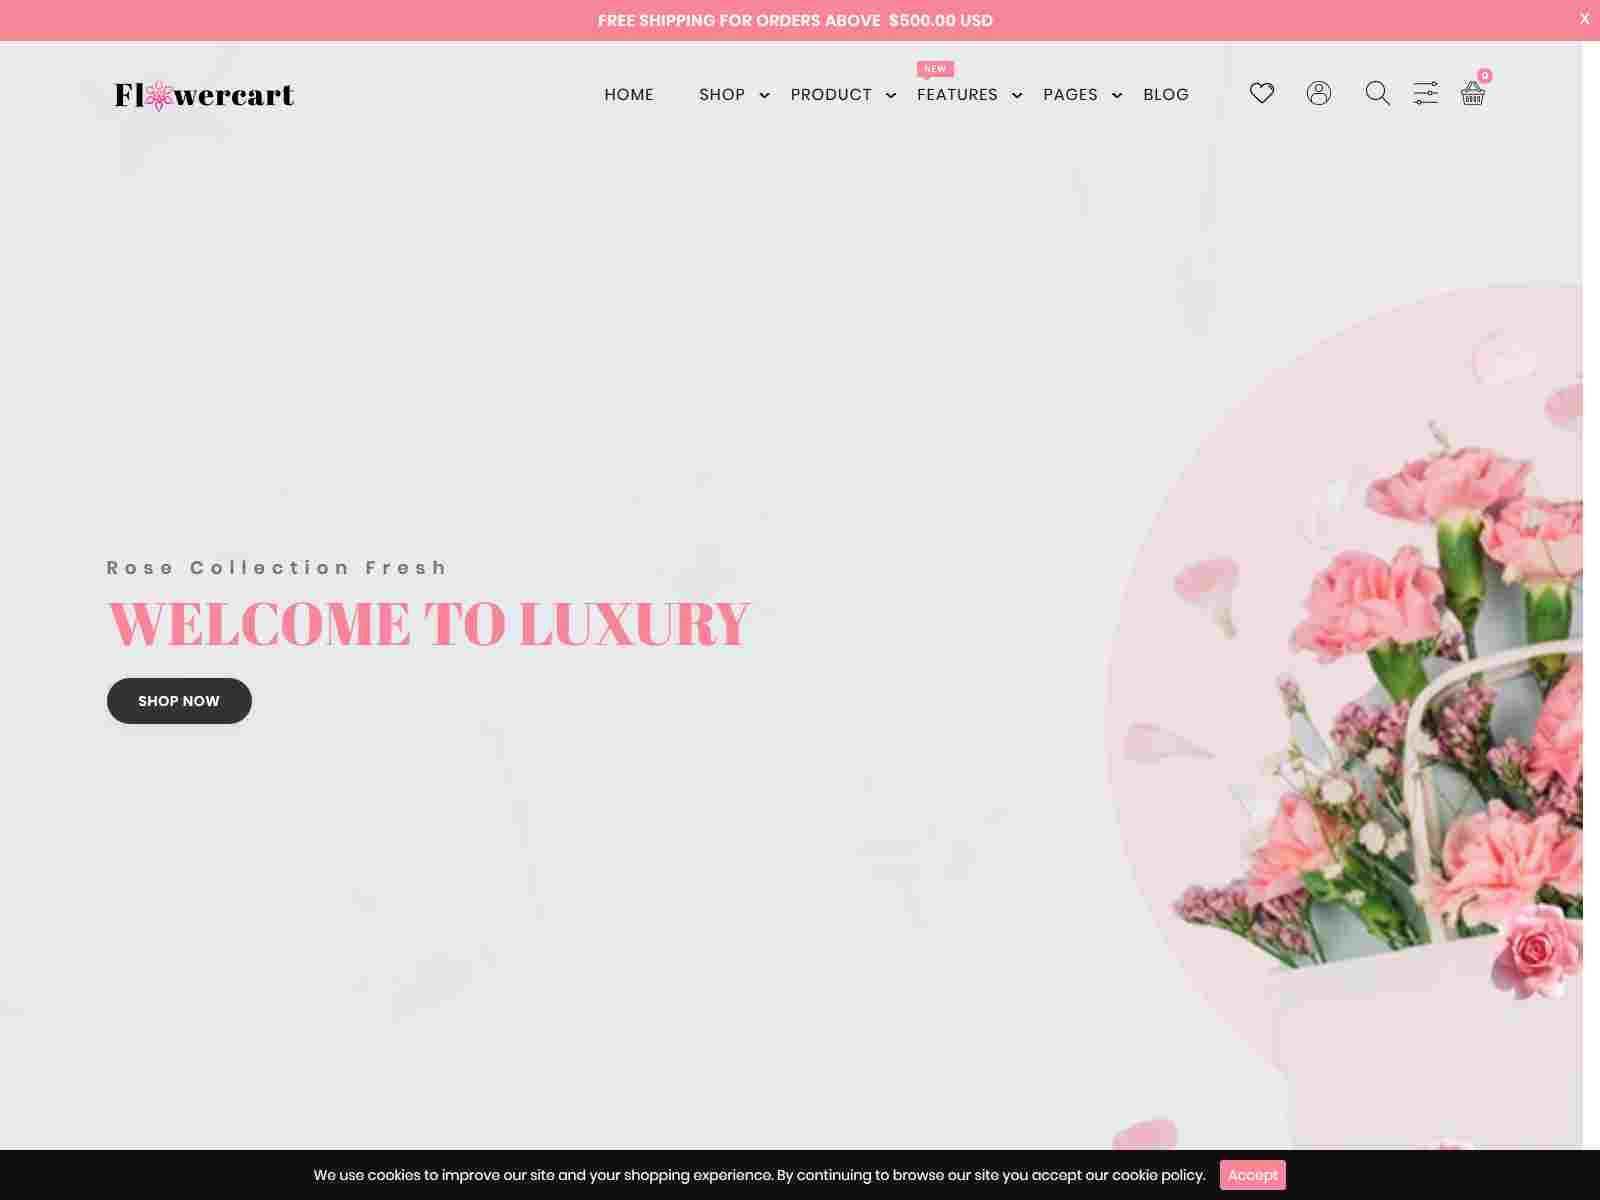 Flowercart - Flower Shop Shopify Theme